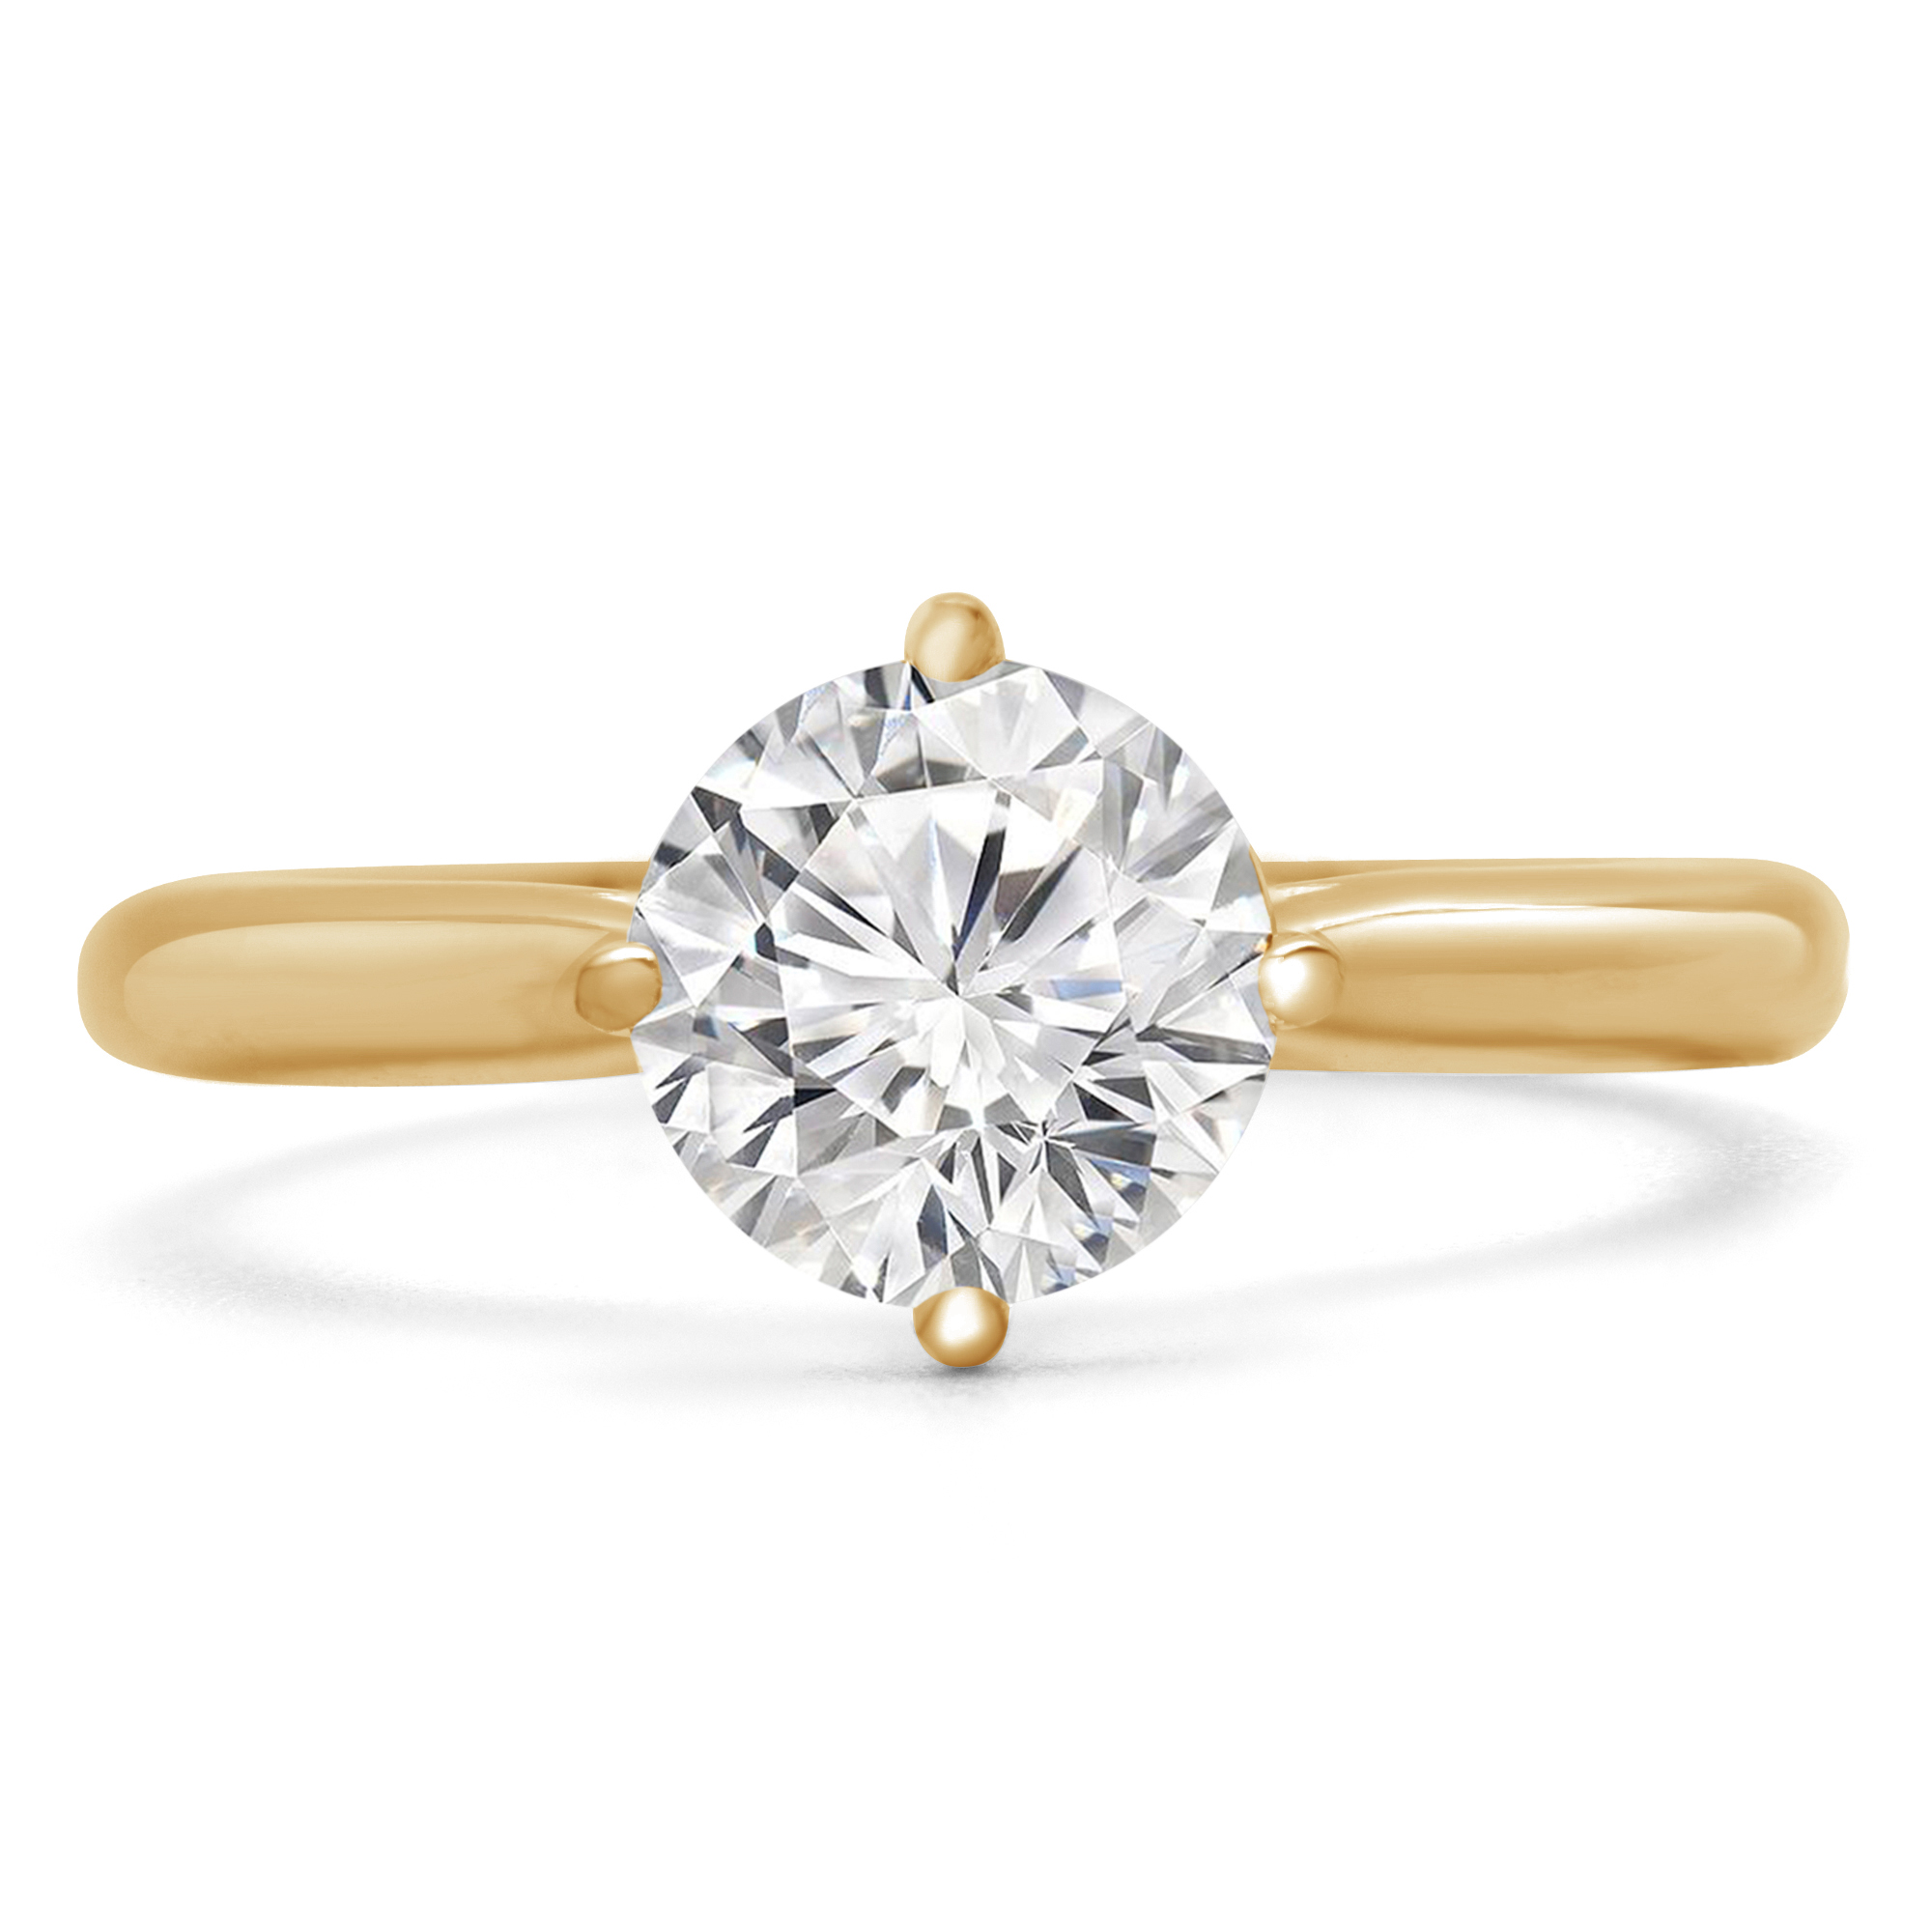 1 1/10 CT Round Diamond Solitaire Engagement Ring in 18K Yellow Gold (MD180240) - image 1 of 2